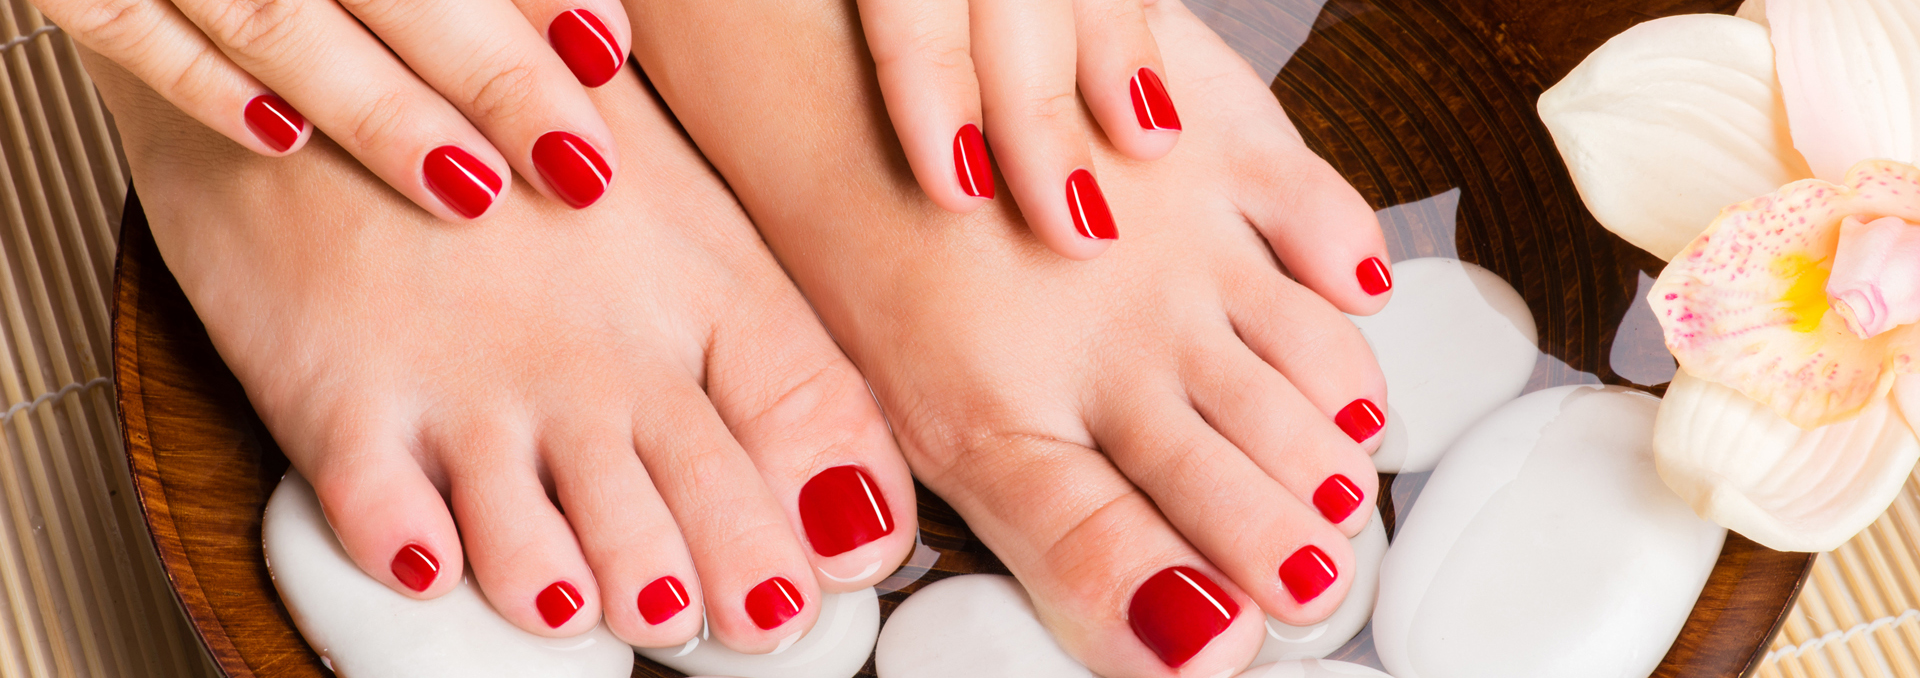 Nails & Spa - Nail salon in Waterville, Maine 04901